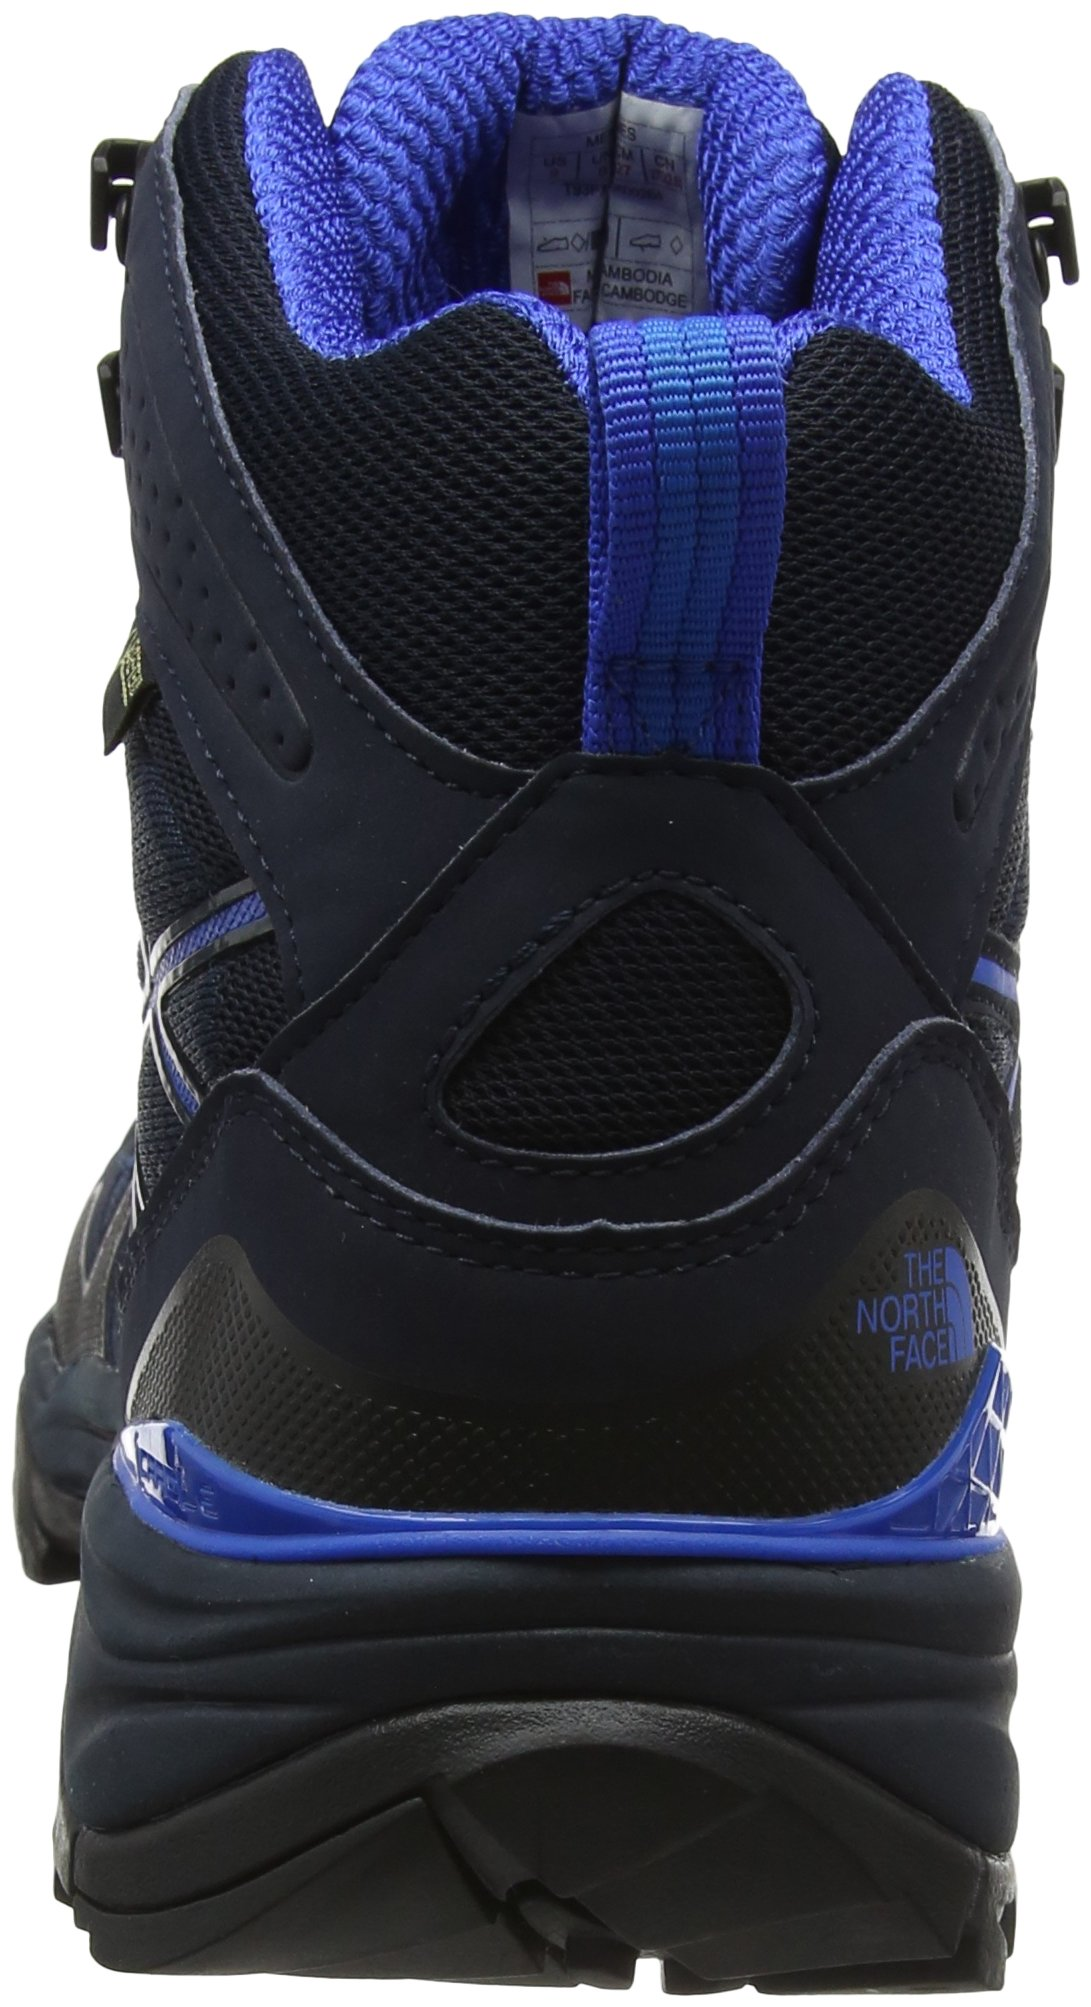 81wXepV32HL - THE NORTH FACE Men's Hedgehog Fastpack Mid Gtx High Rise Hiking Boots